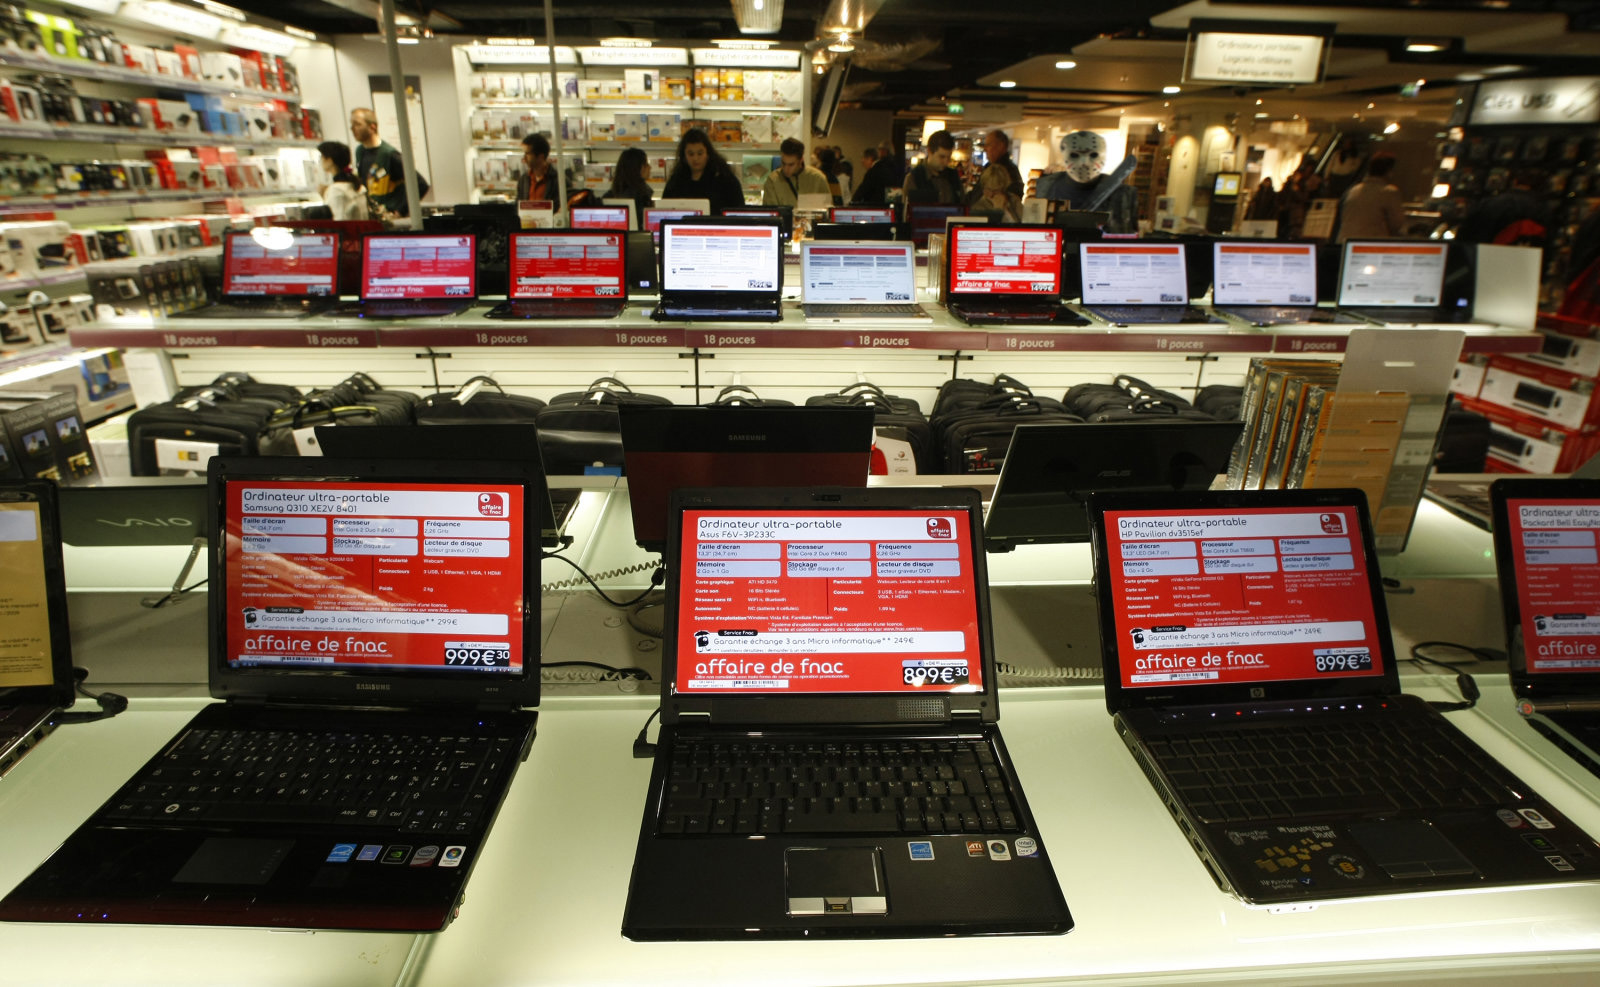 Customers look at computers in the French FNAC department store in Nice, southeastern France, February 27, 2009.  REUTERS/Eric Gaillard (FRANCE)